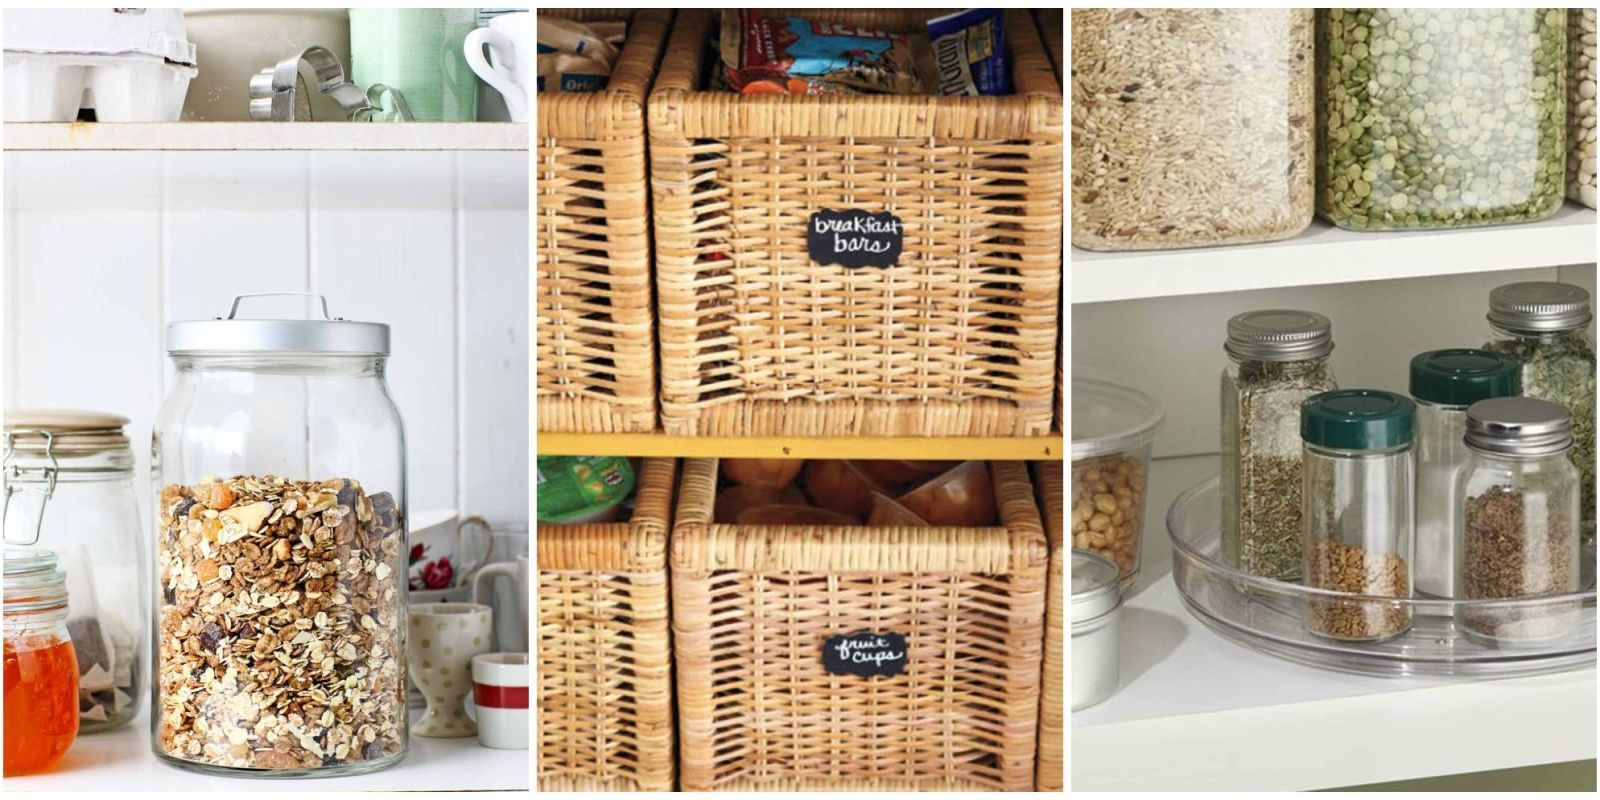 15 Pantry Organization Ideas , How to Organize a Kitchen Pantry